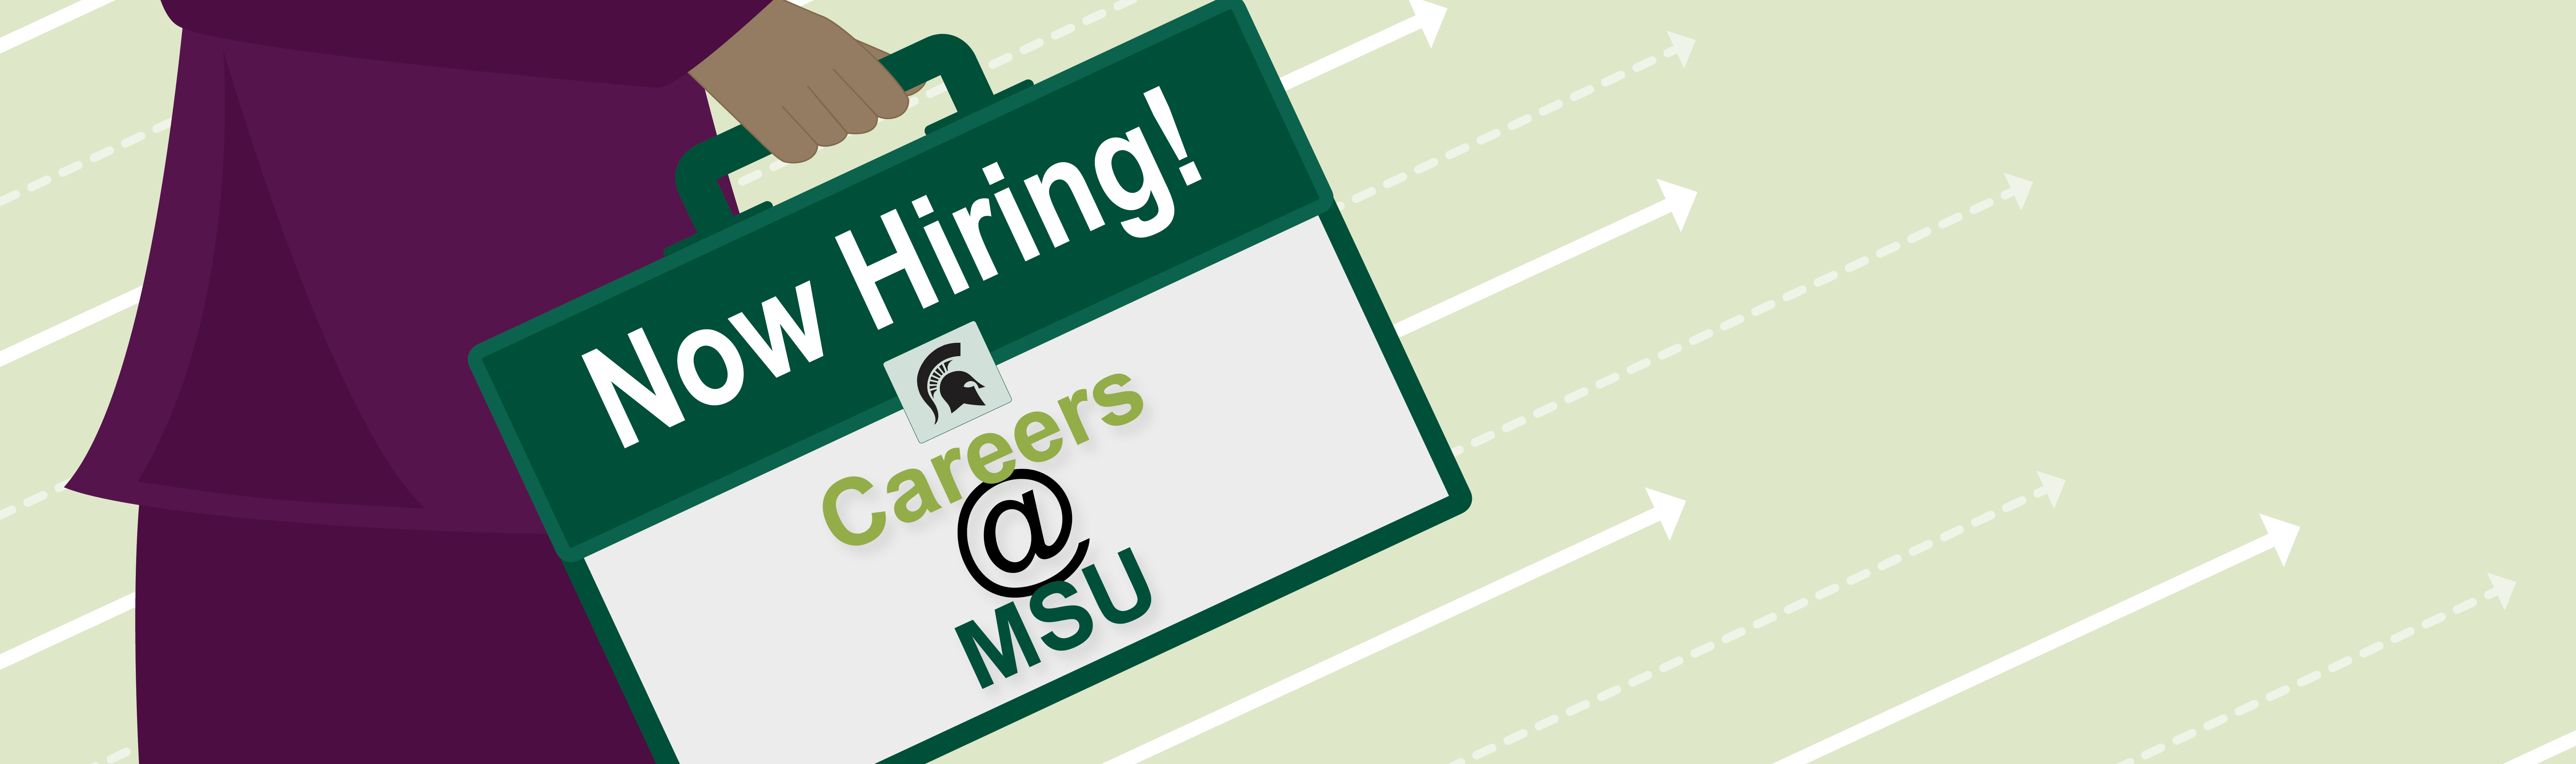 Careers at MSU banner image